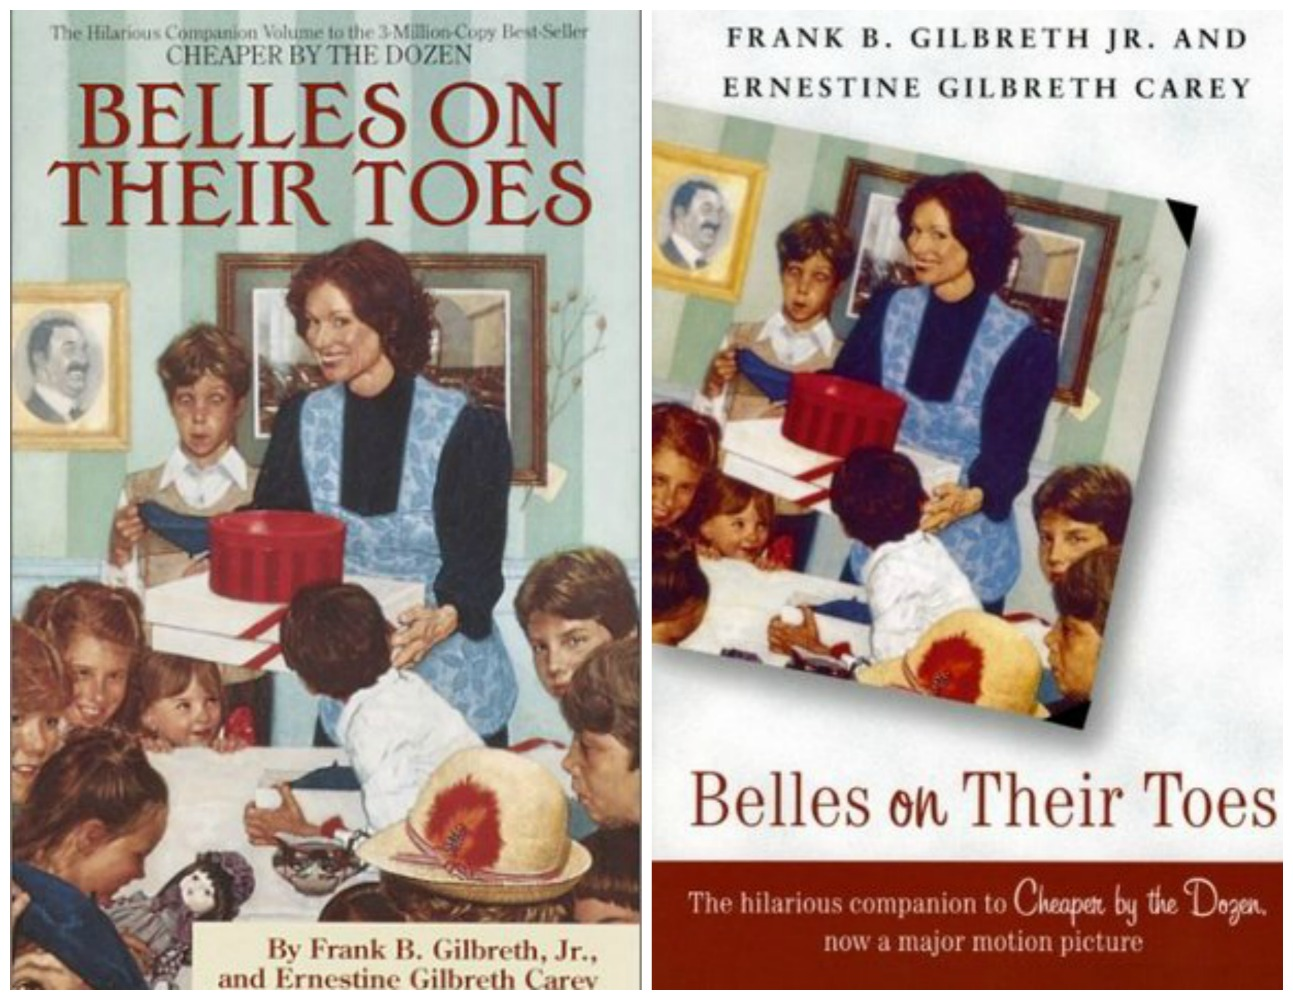 Belles on Their Toes Collage